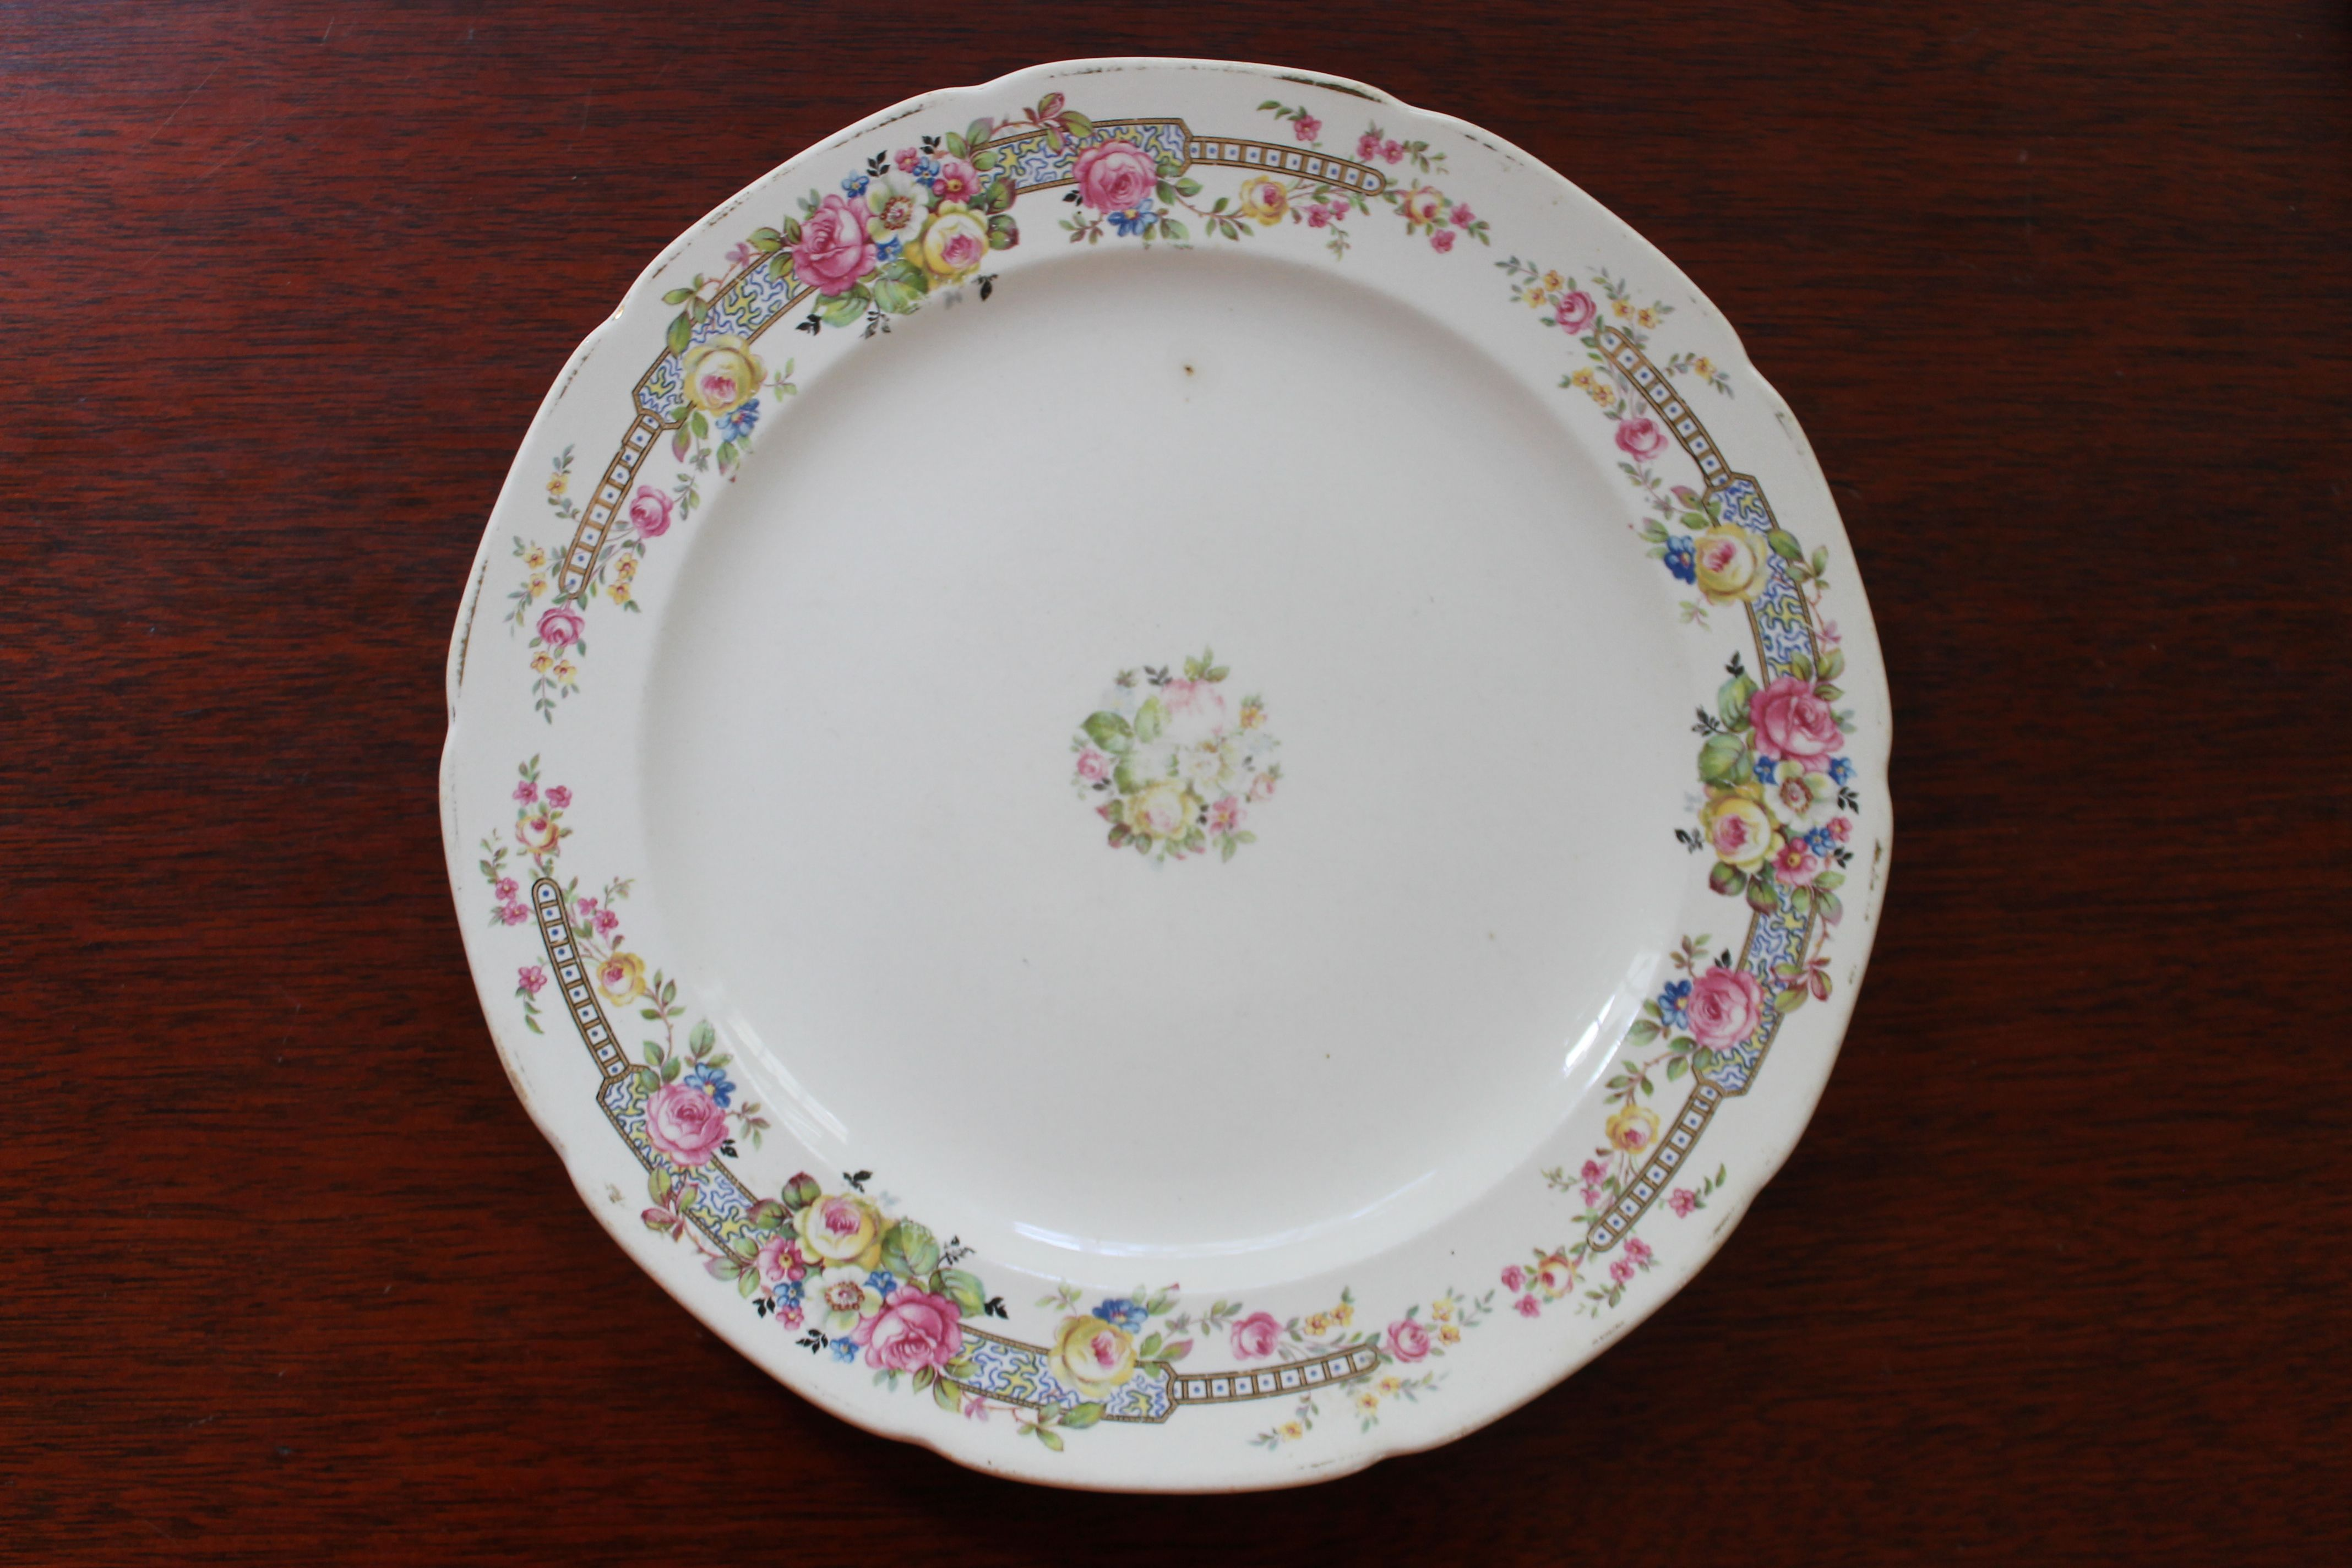 Crooksville China Floral Center And Border 9 Dinner Plate Only 1 Plate Available Southern Vintage Classic China Collect Dinner Plates Plates China Patterns